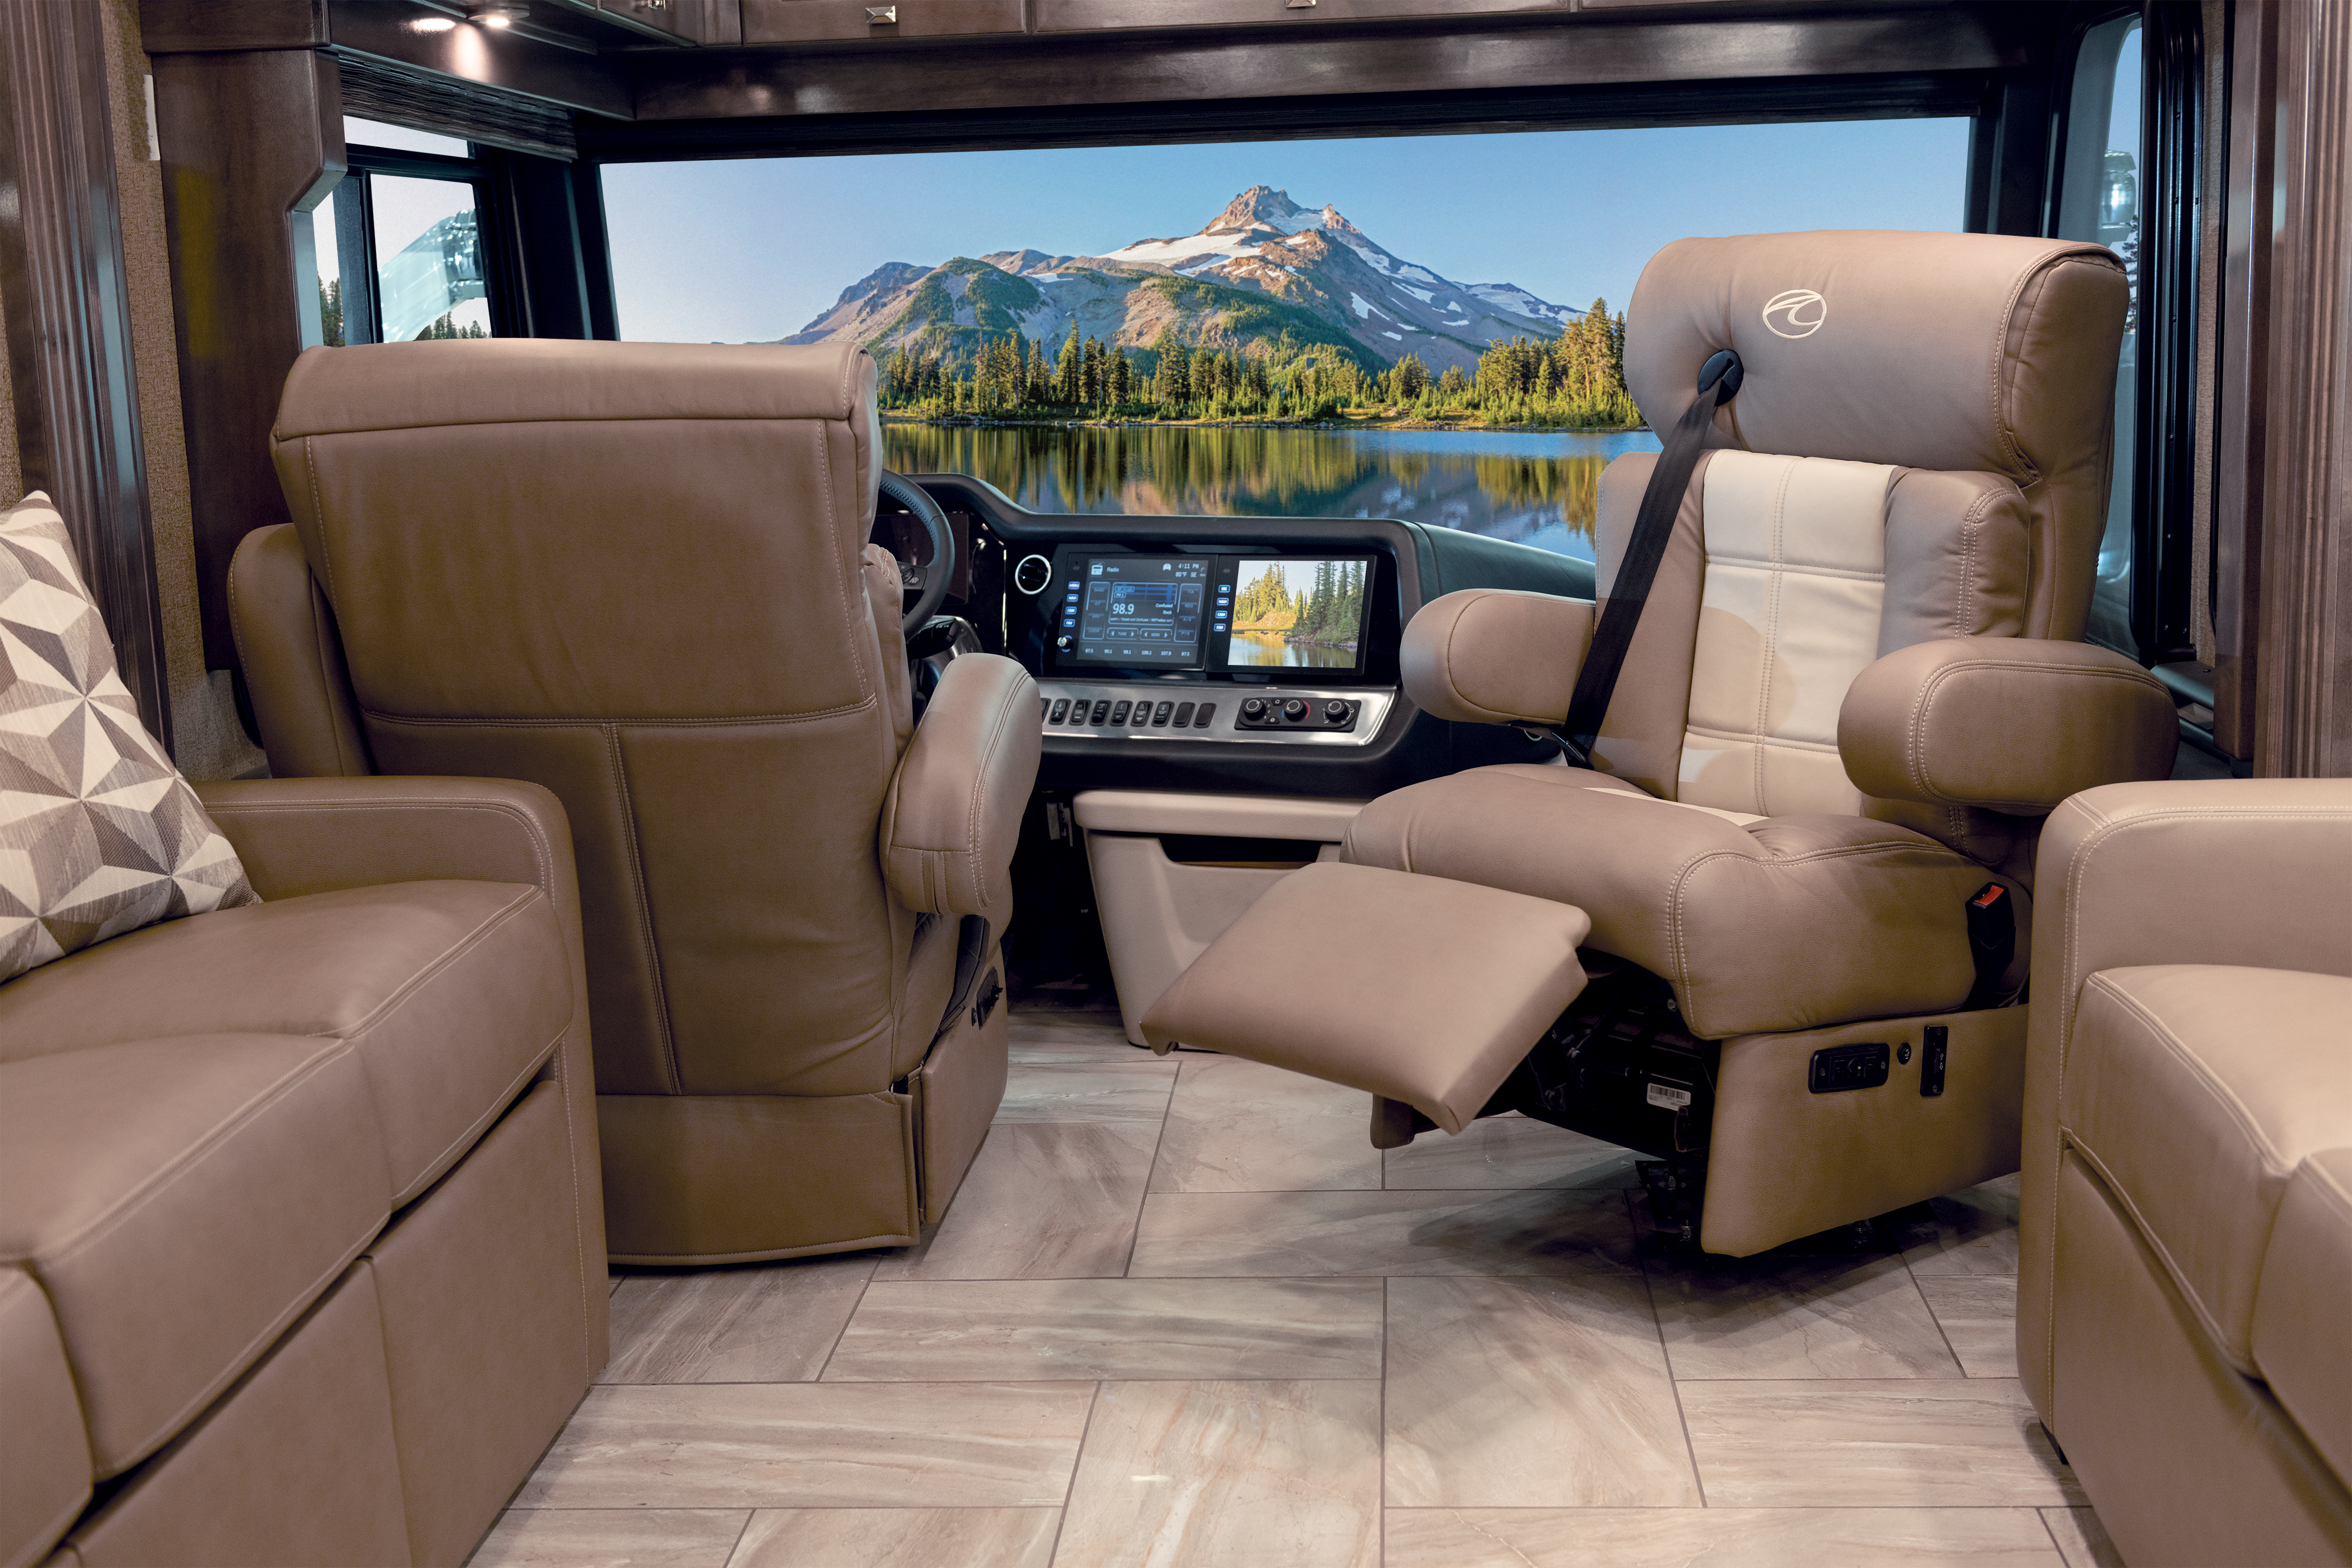 18 seating Front Footrest Out Tradition42 V Salted Caramel SB Cab MY21